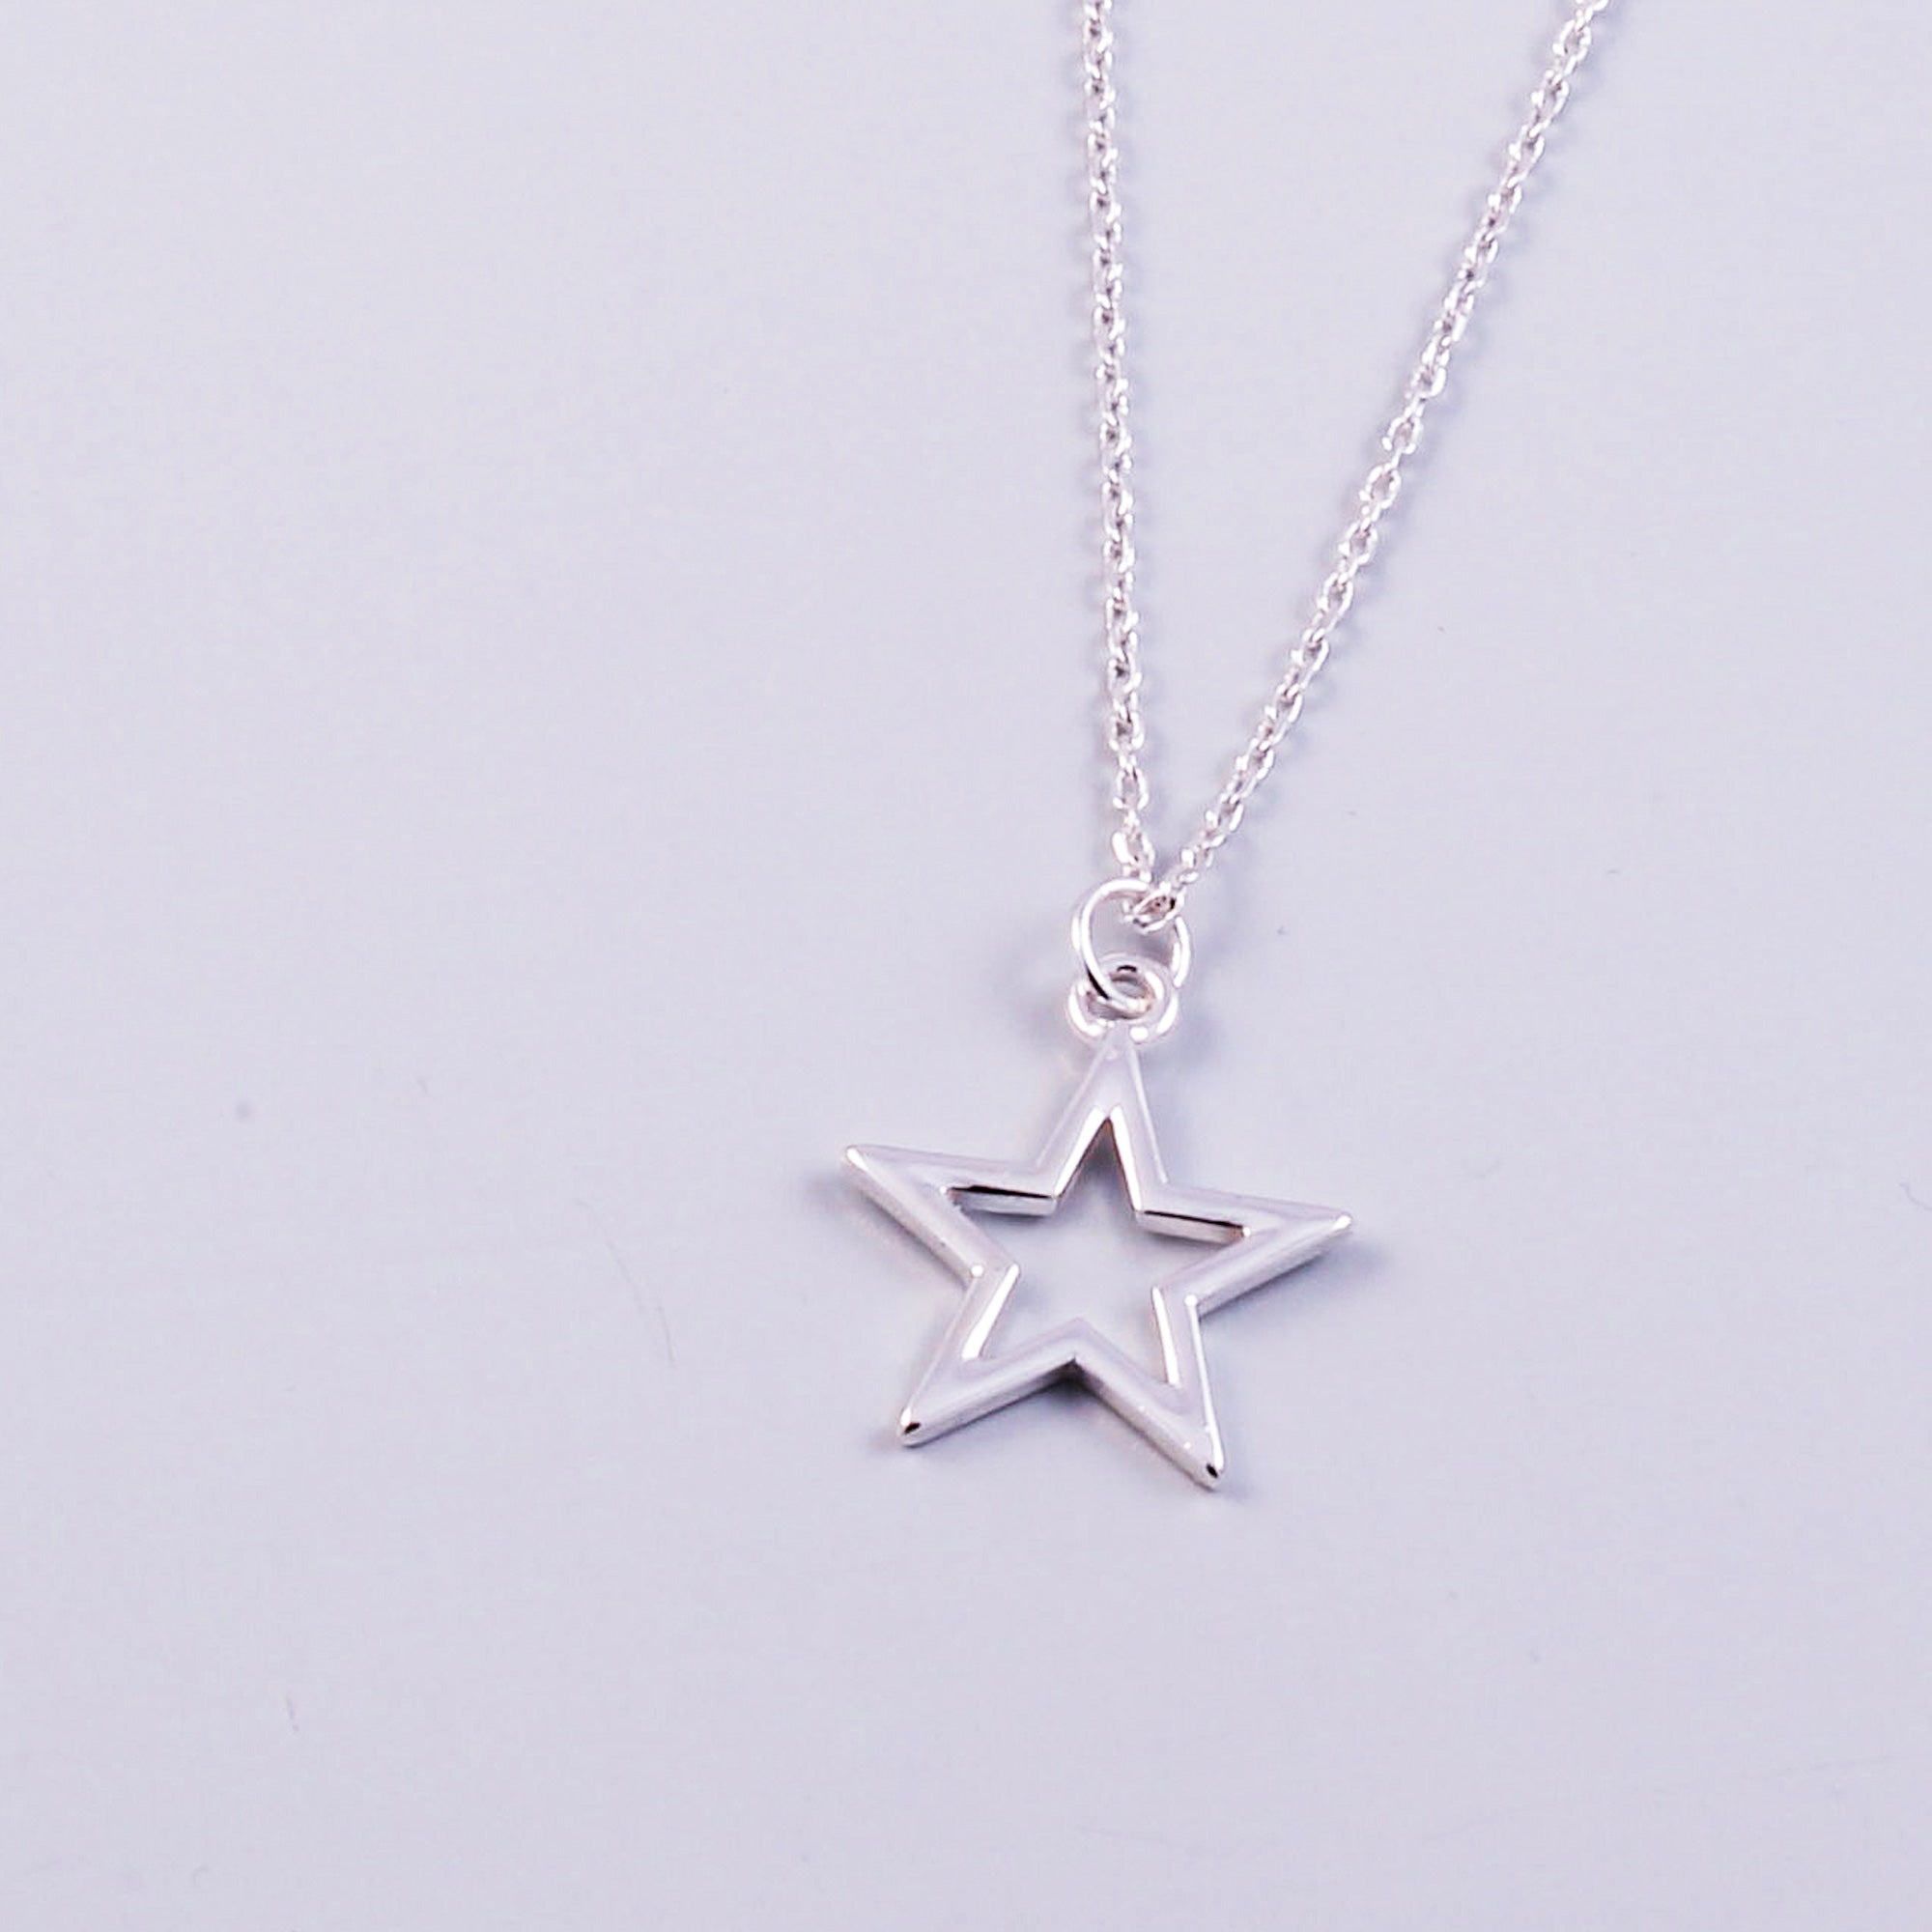 Outline Star Necklace | Star Necklace | Star Pendant | Silver Star Nec